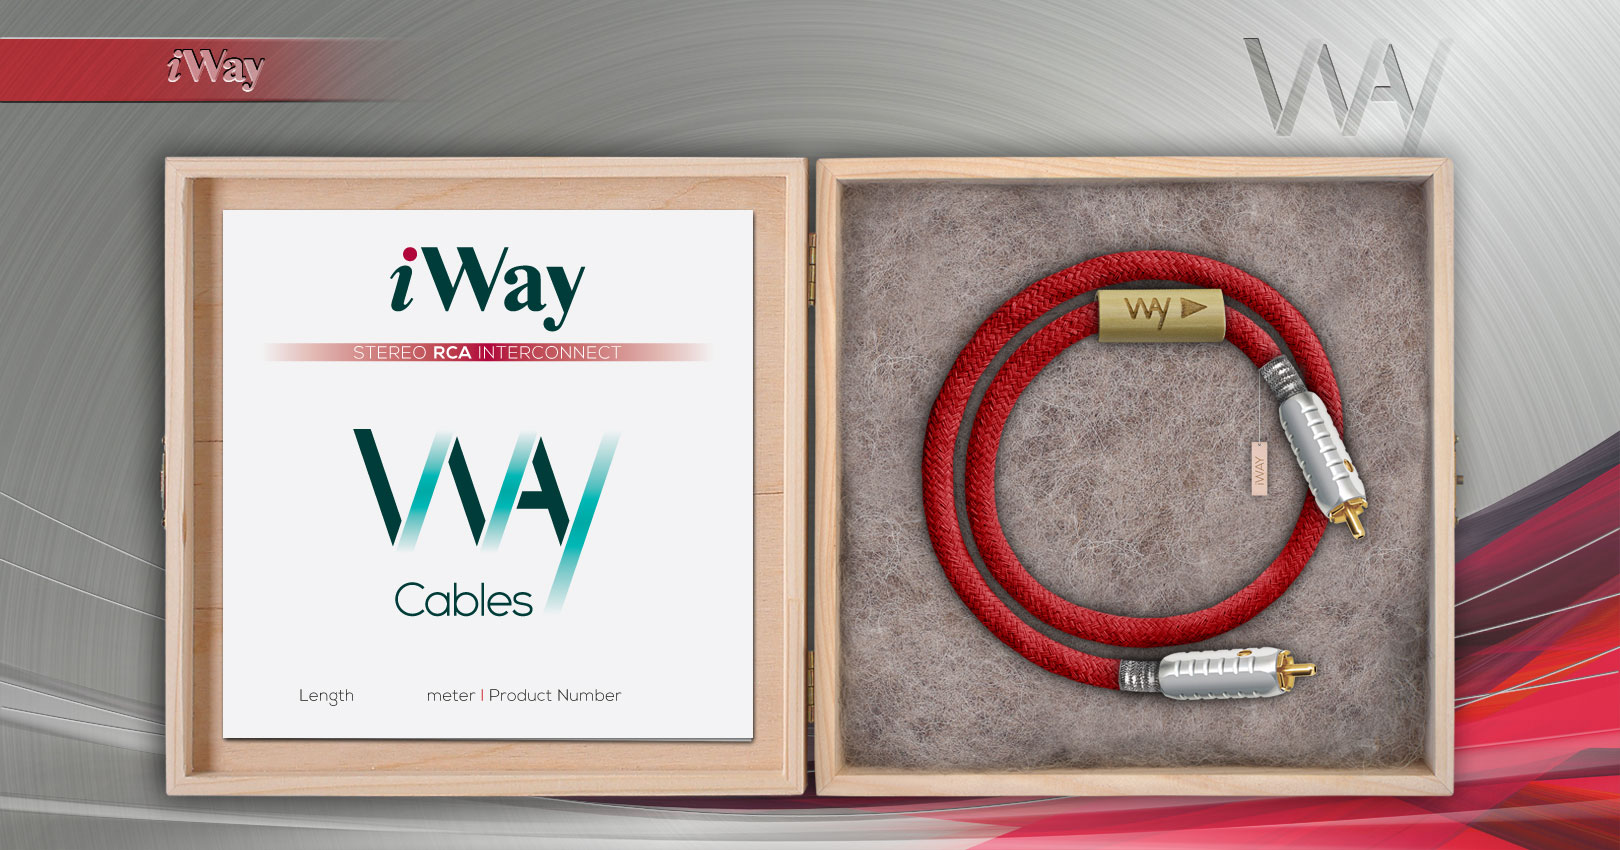 Way Cables iWAY audiophile interconnect cable for Portable Audio devices sound improvement